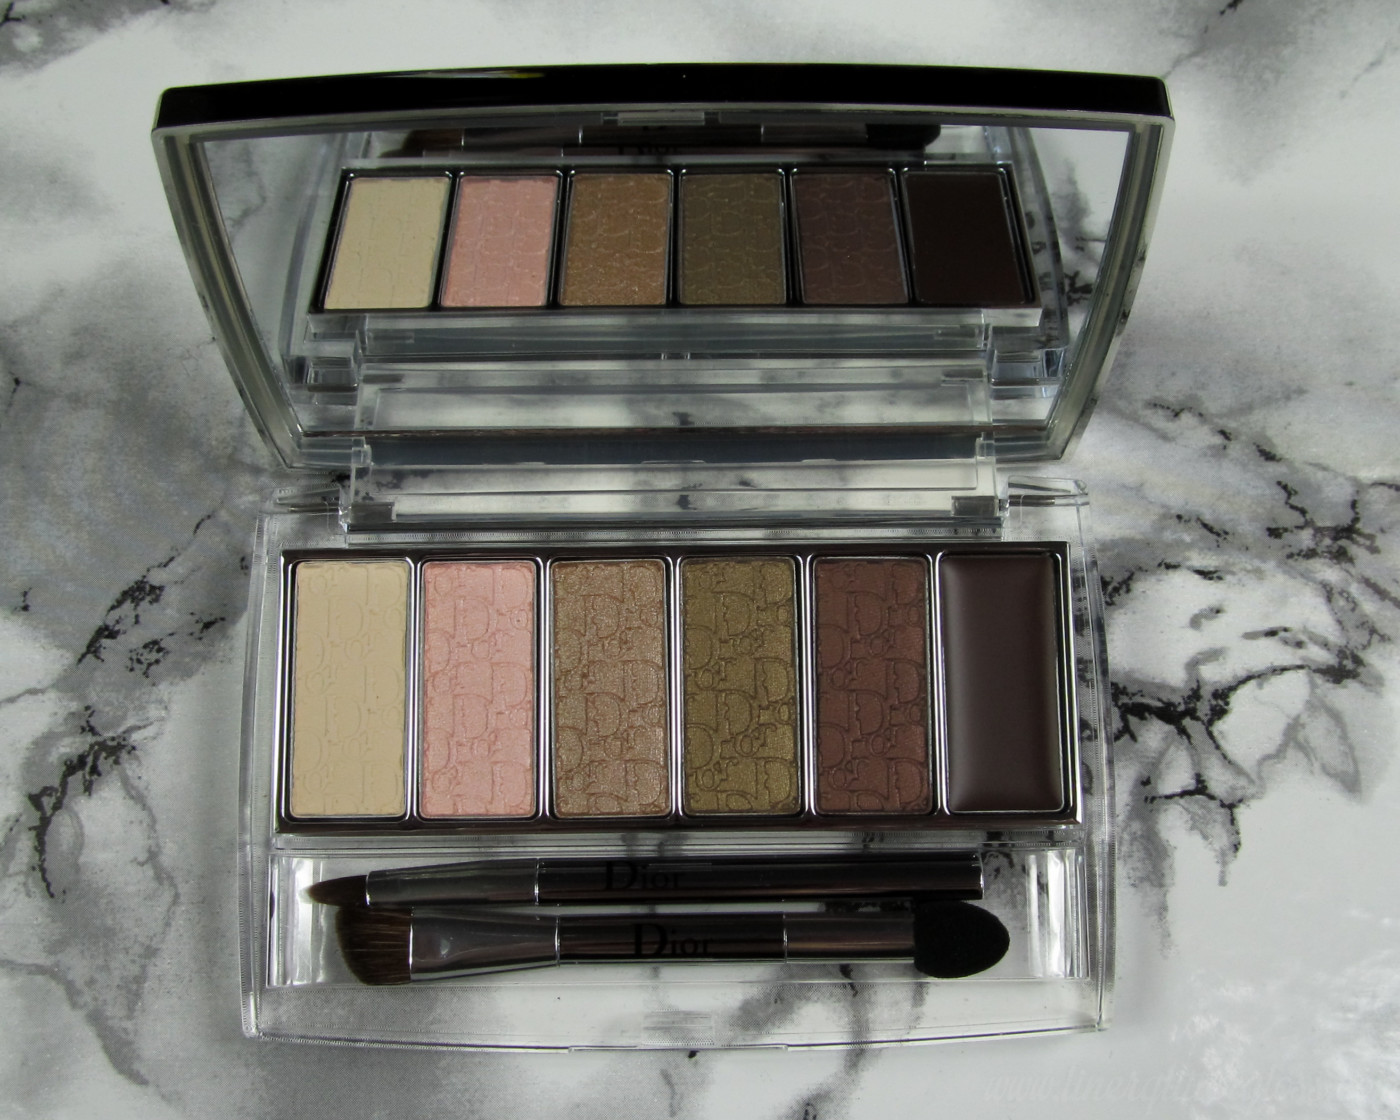 Dior Eye Reviver Illuminating Neutrals Eye Palette